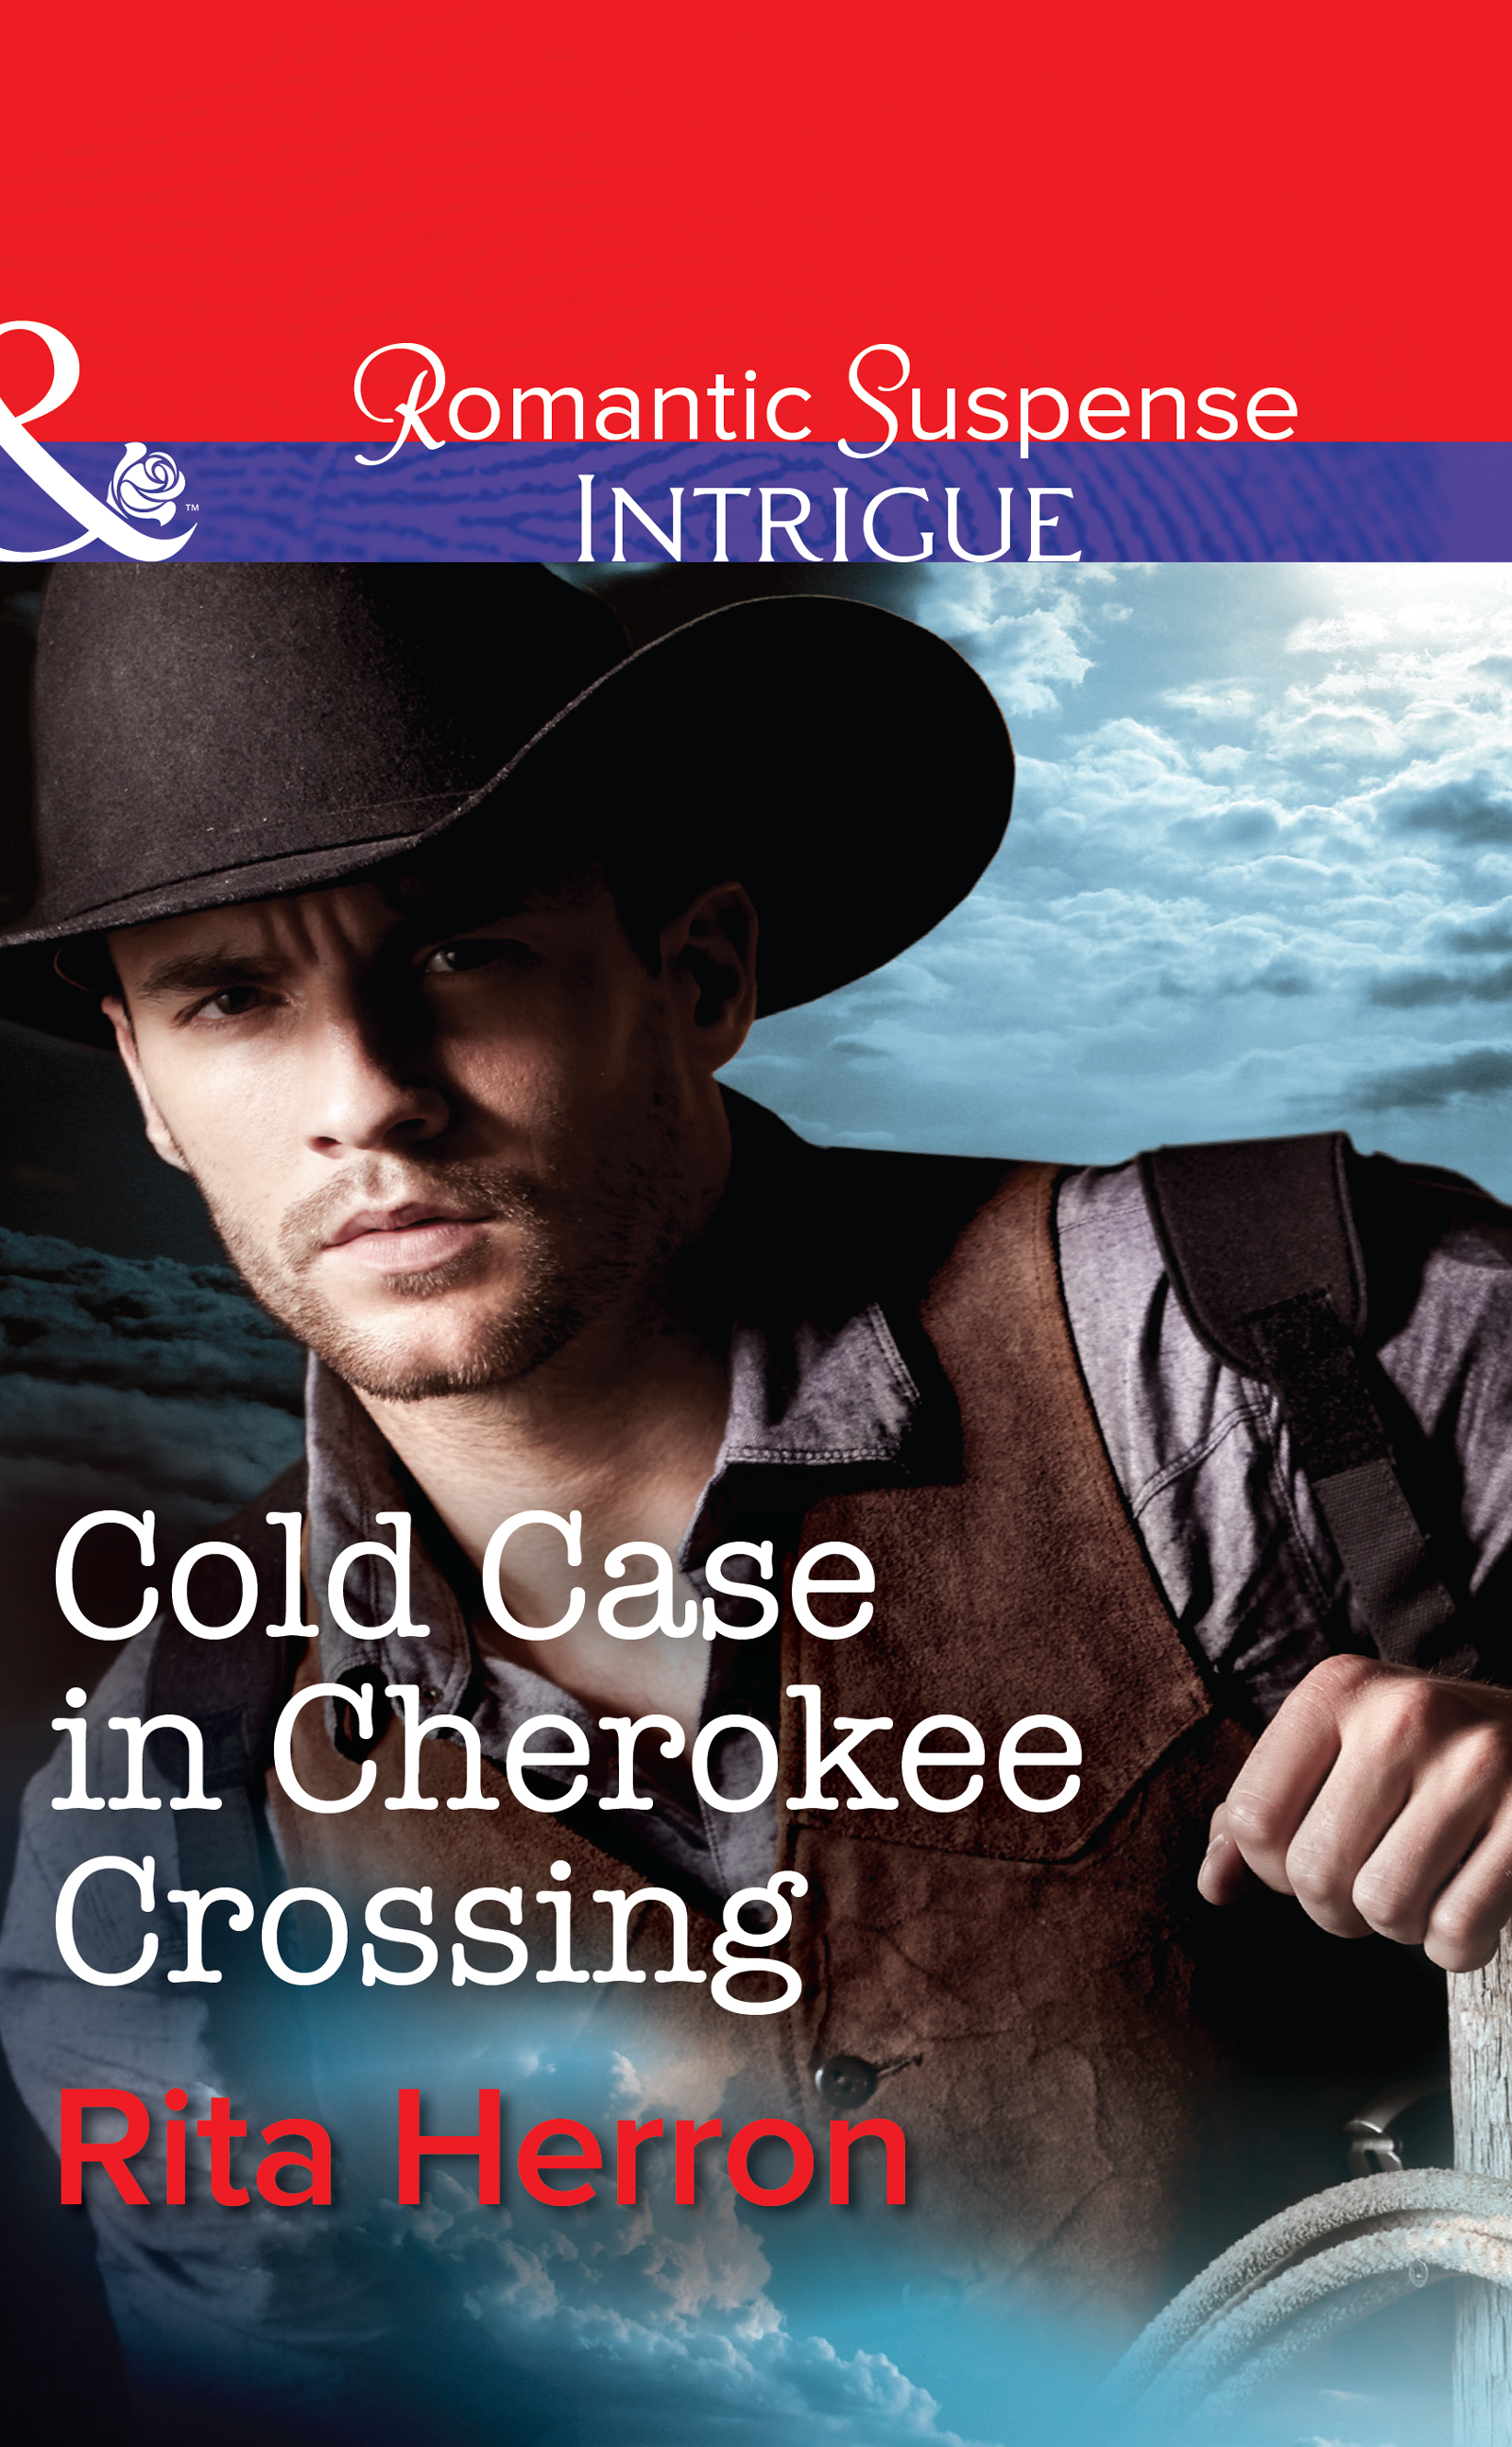 Cold Case in Cherokee Crossing (Mills & Boon Intrigue)